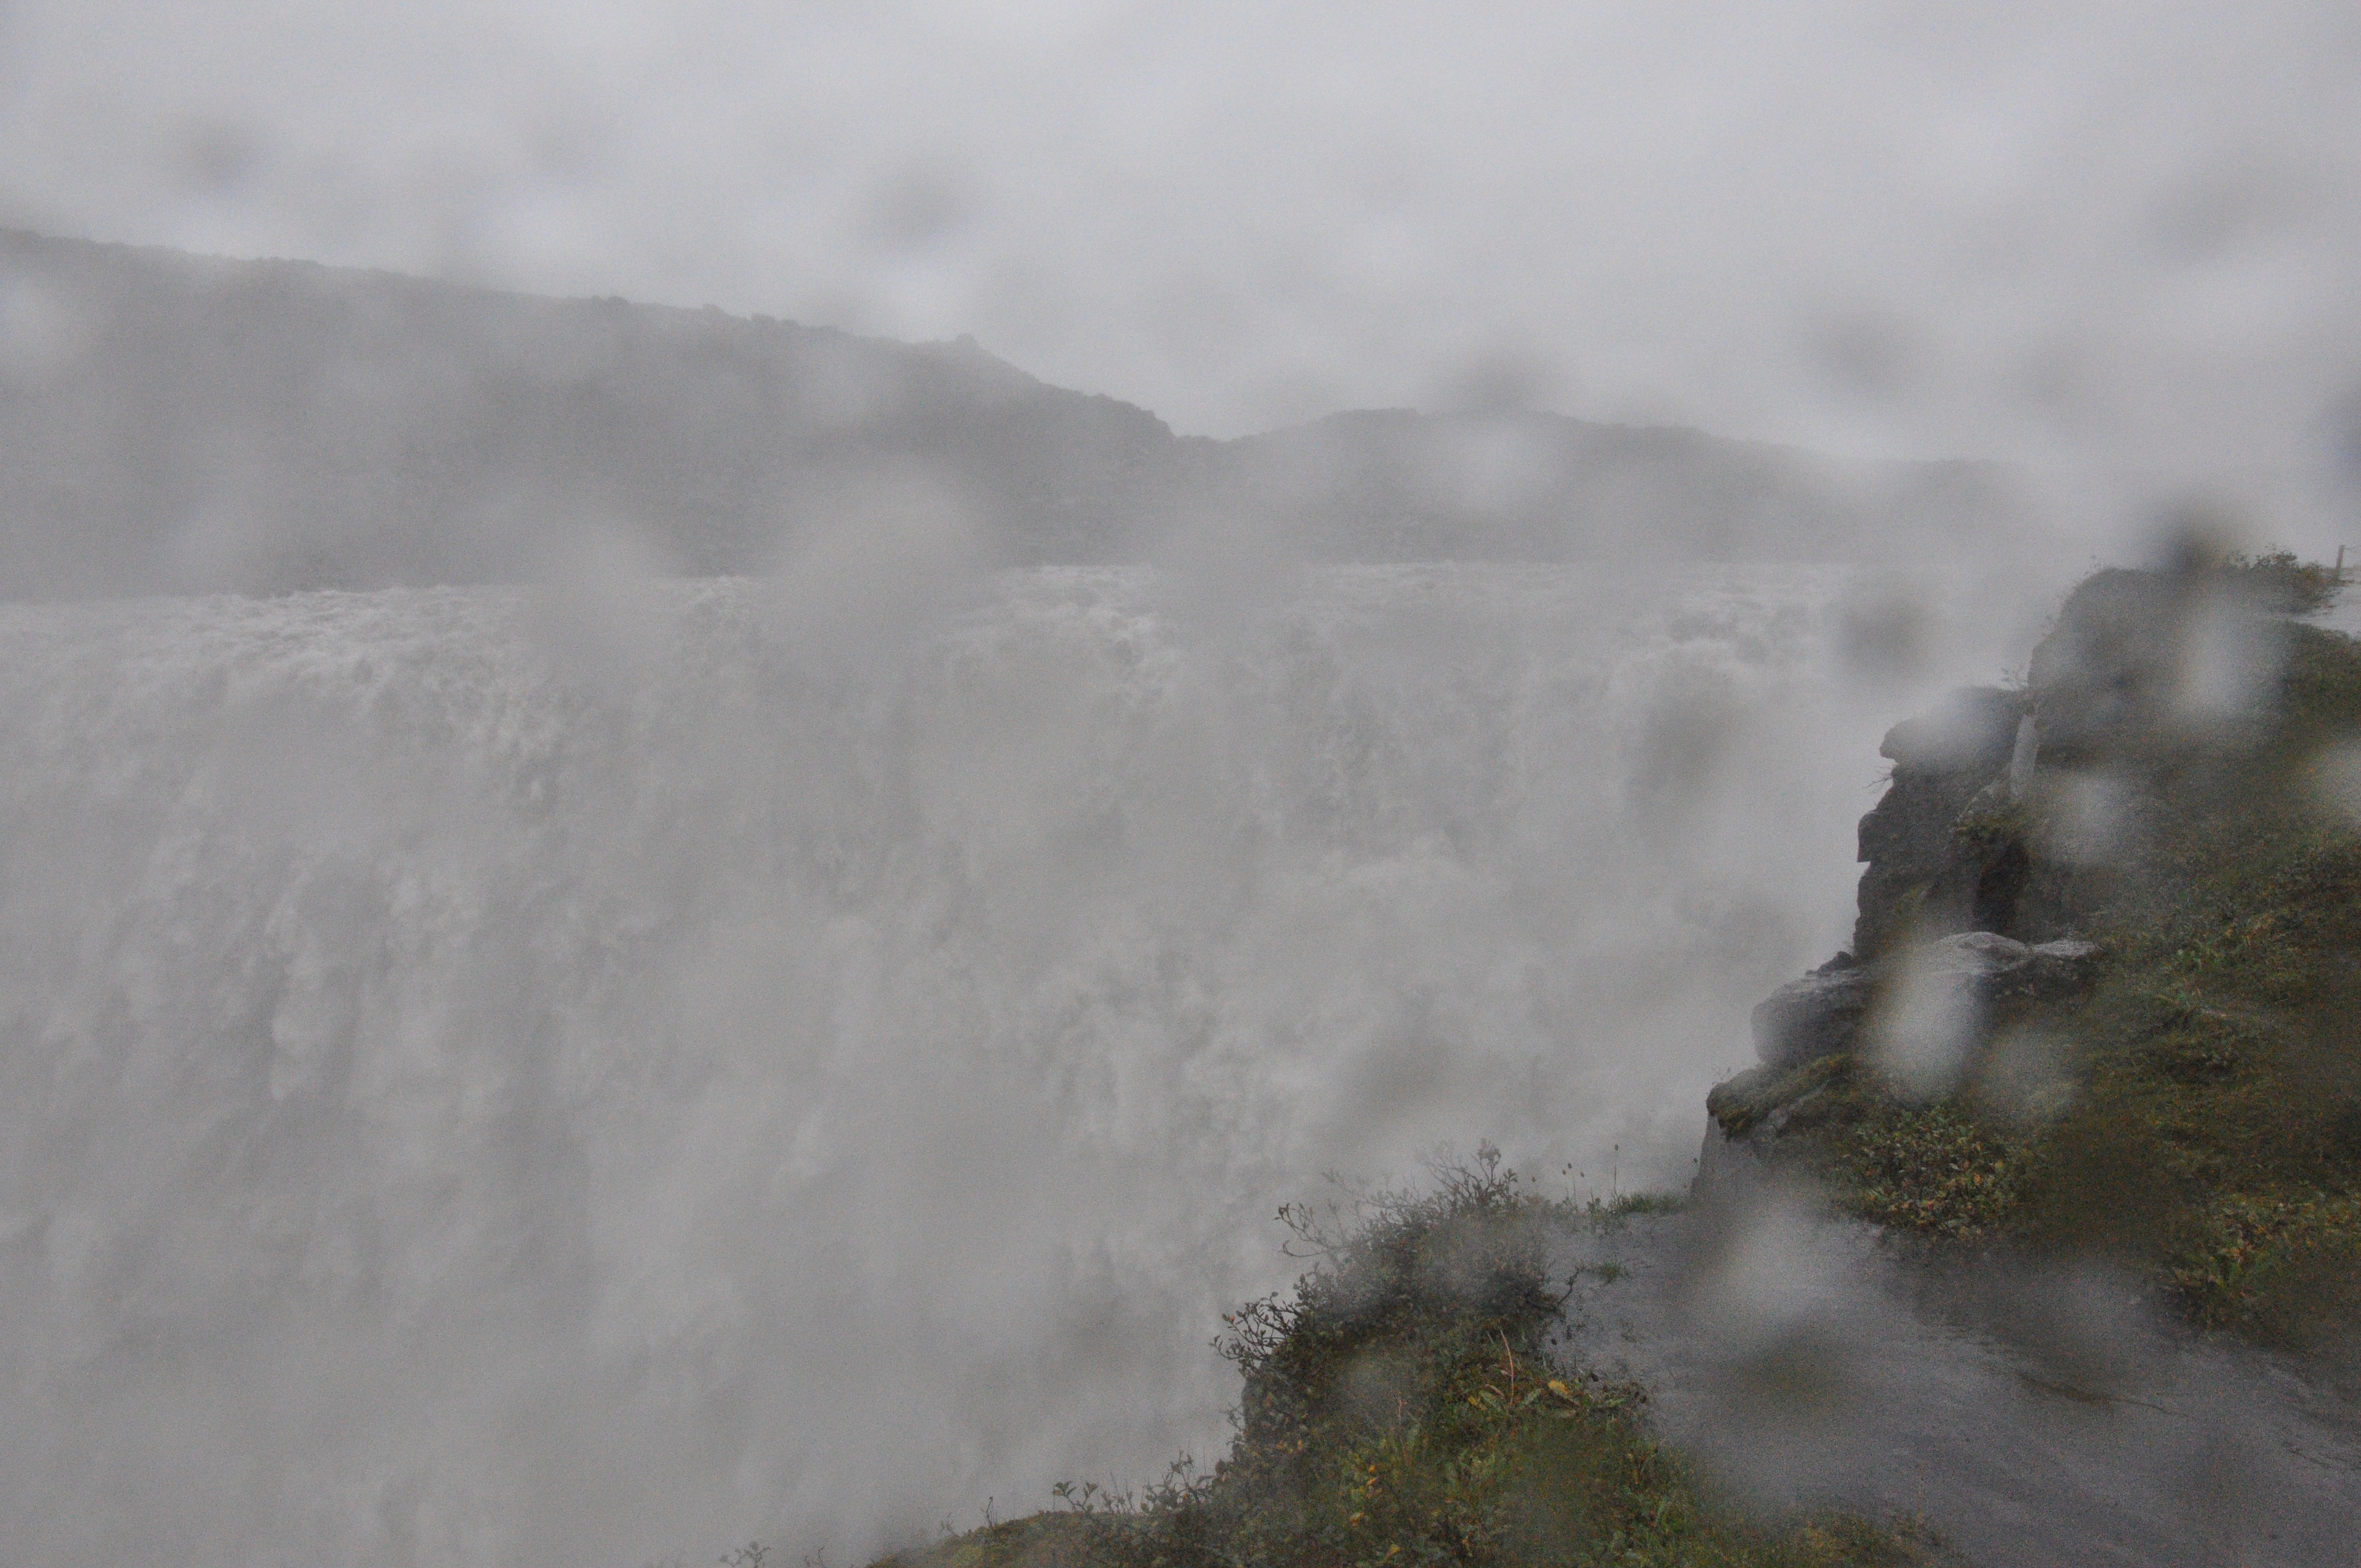 Rainy Dettifoss in north Iceland